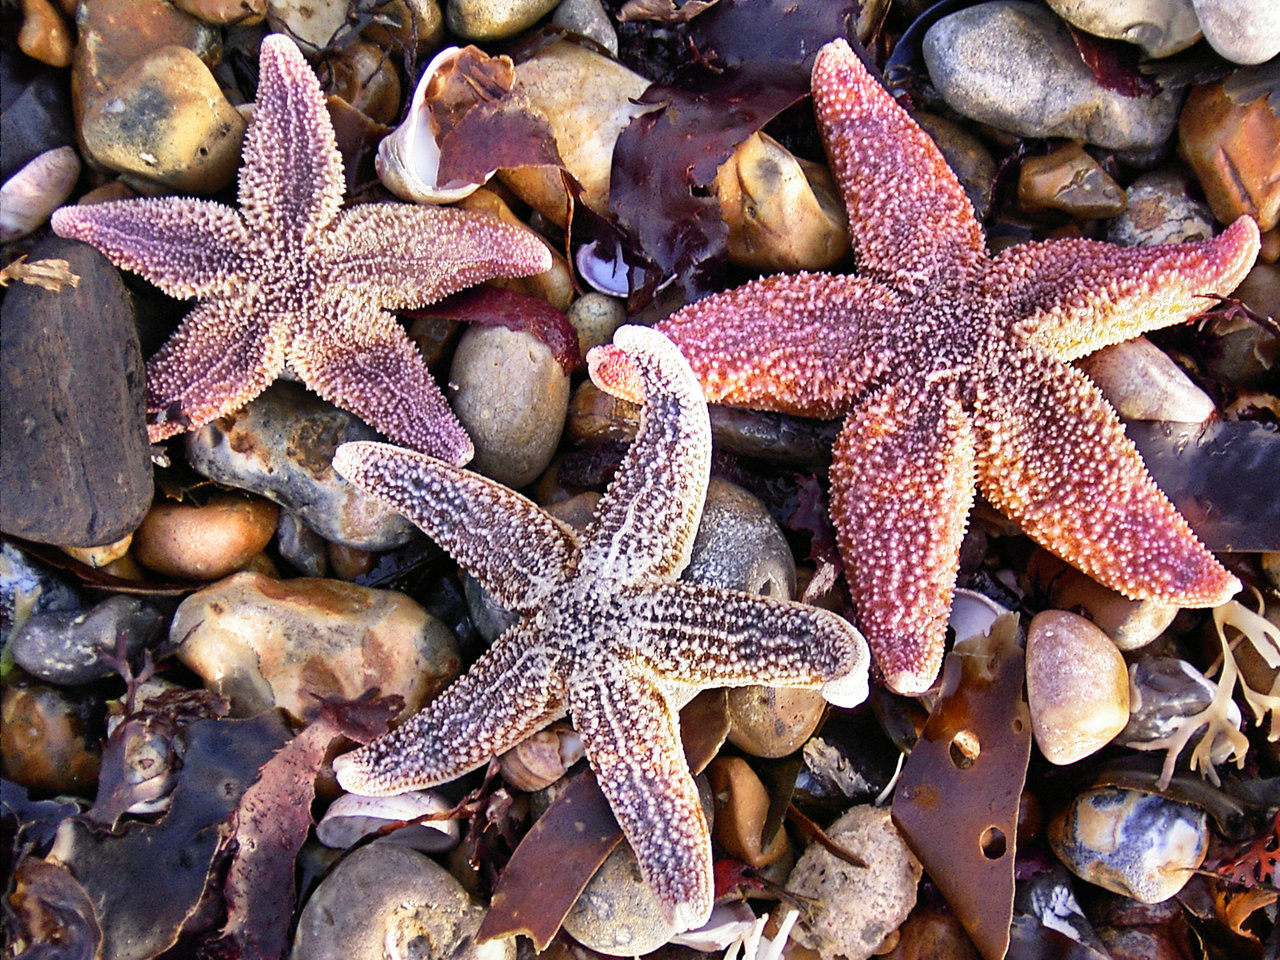 Three beautiful purple sea stars on top of smaller rocks out of the water